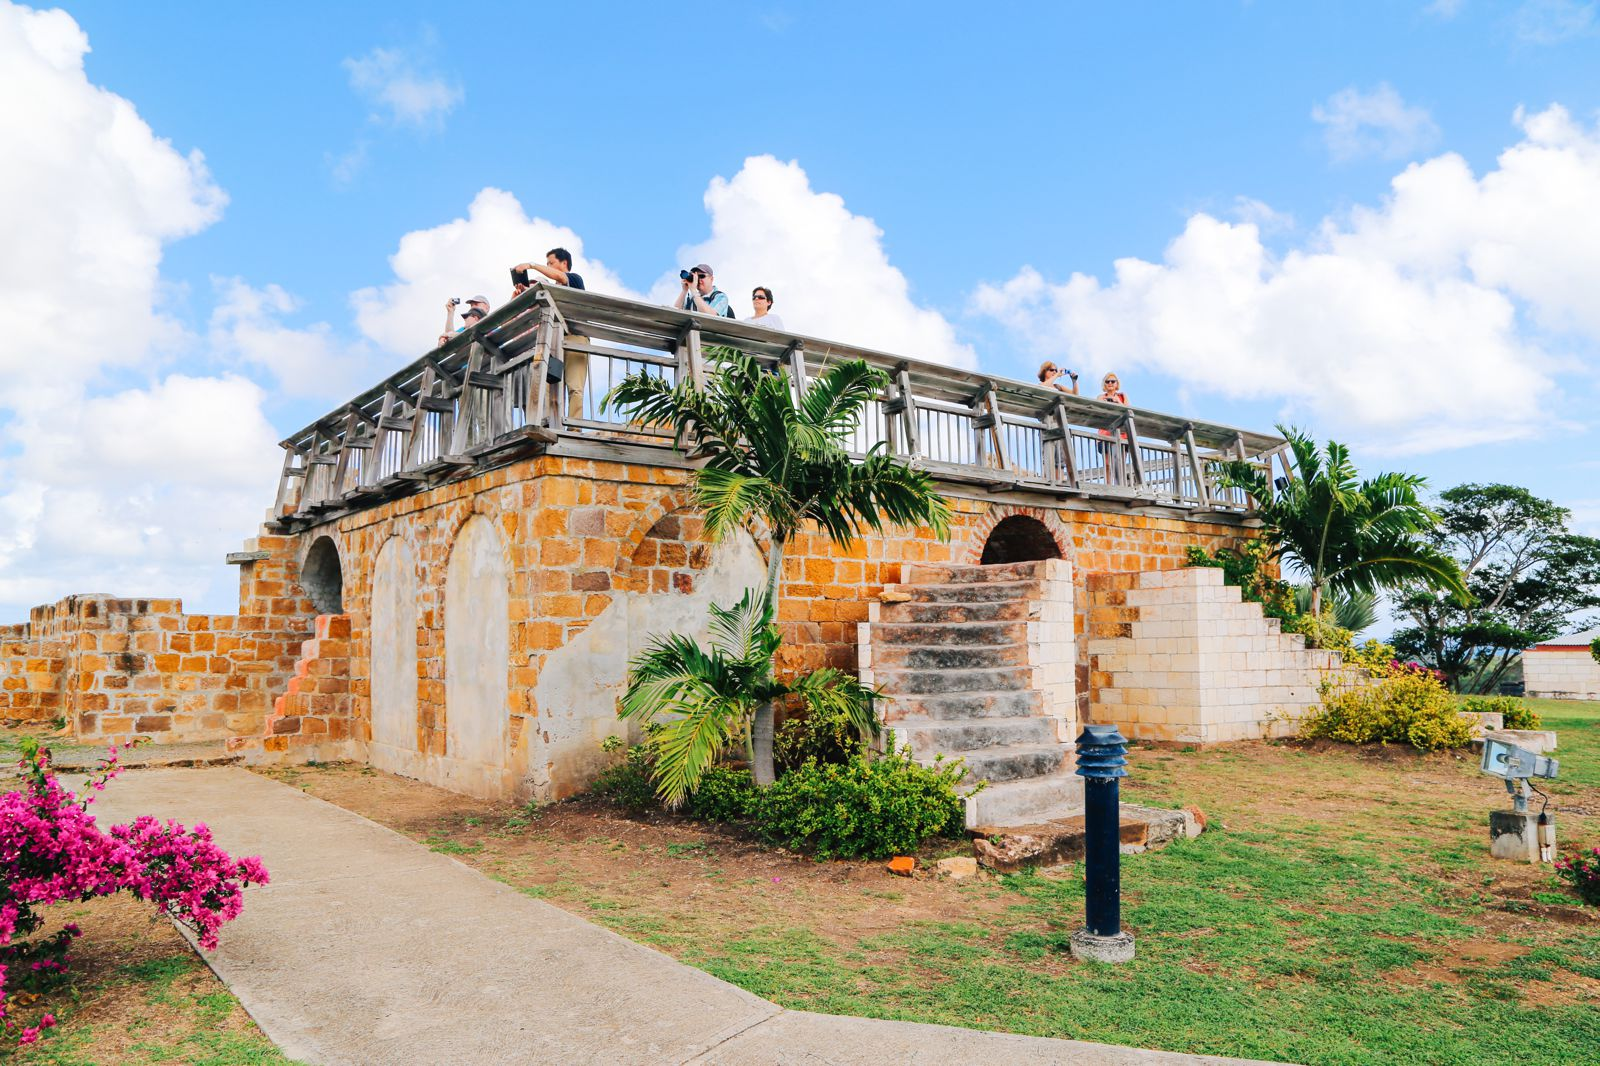 Exploring The Caribbean Island Of Antigua By Land - Part 1 (37)